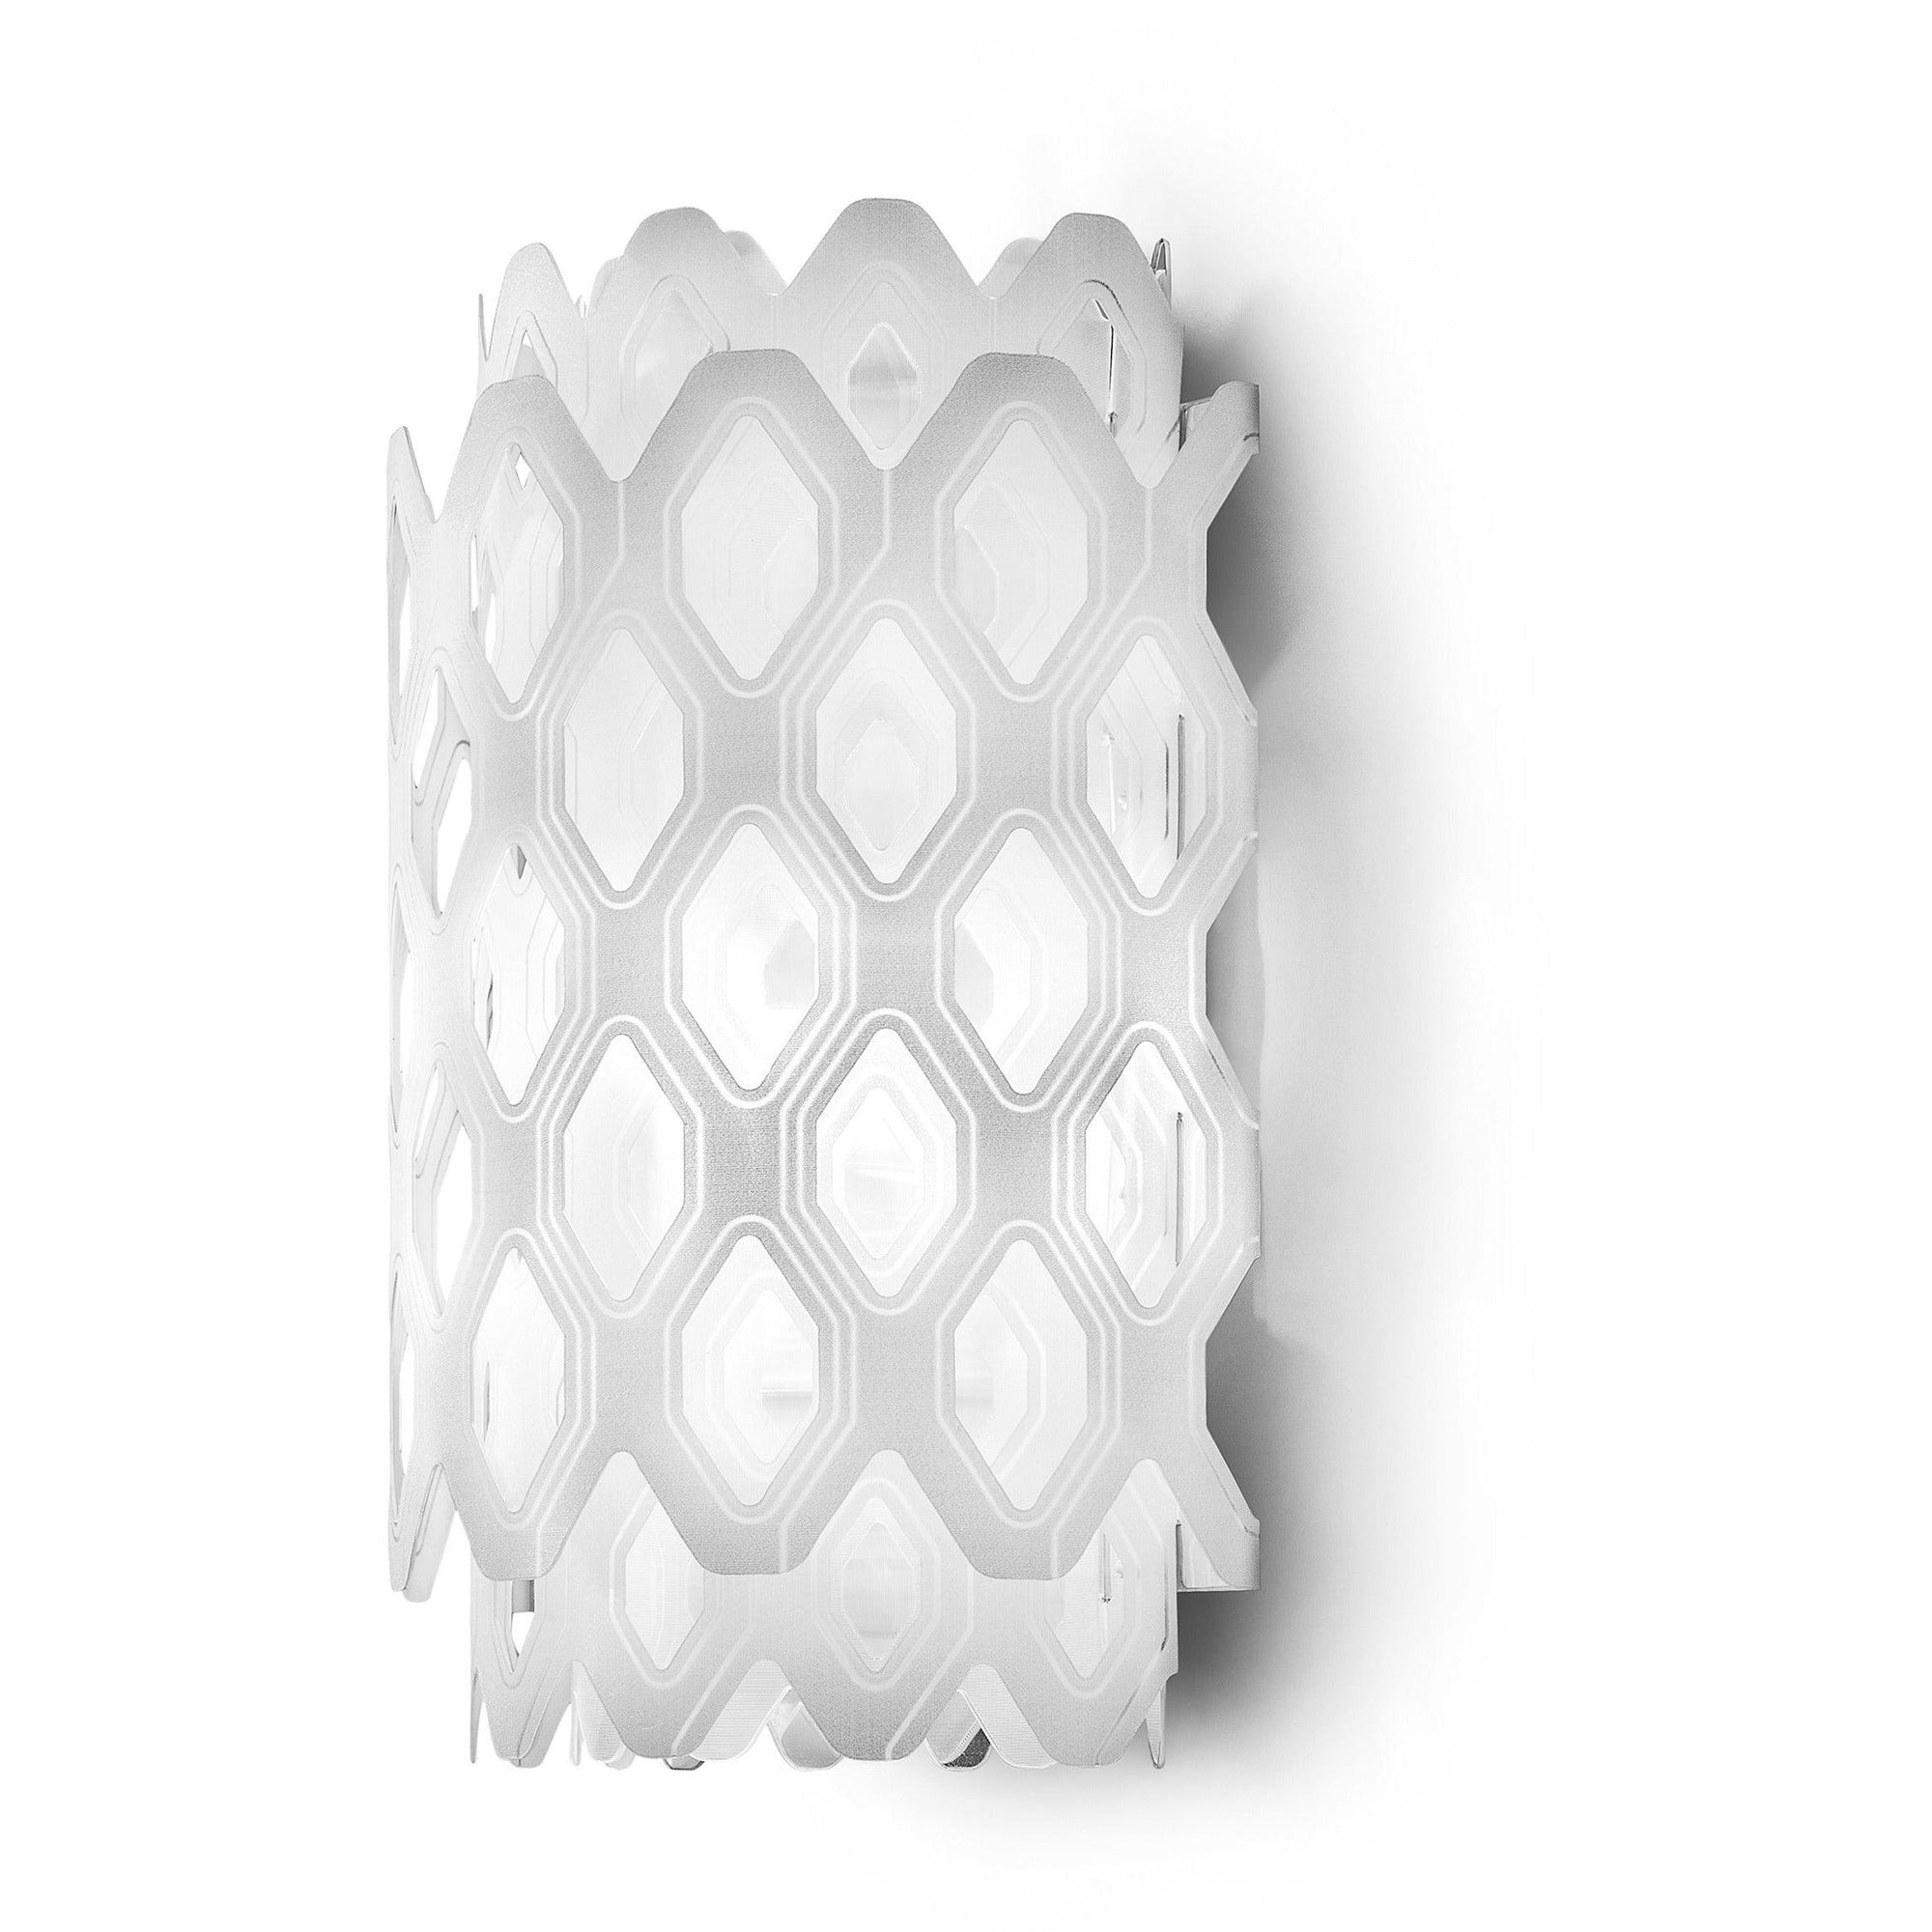 SLAMP - CHR88APP0000W_000 - Wall Light - Charlotte - White